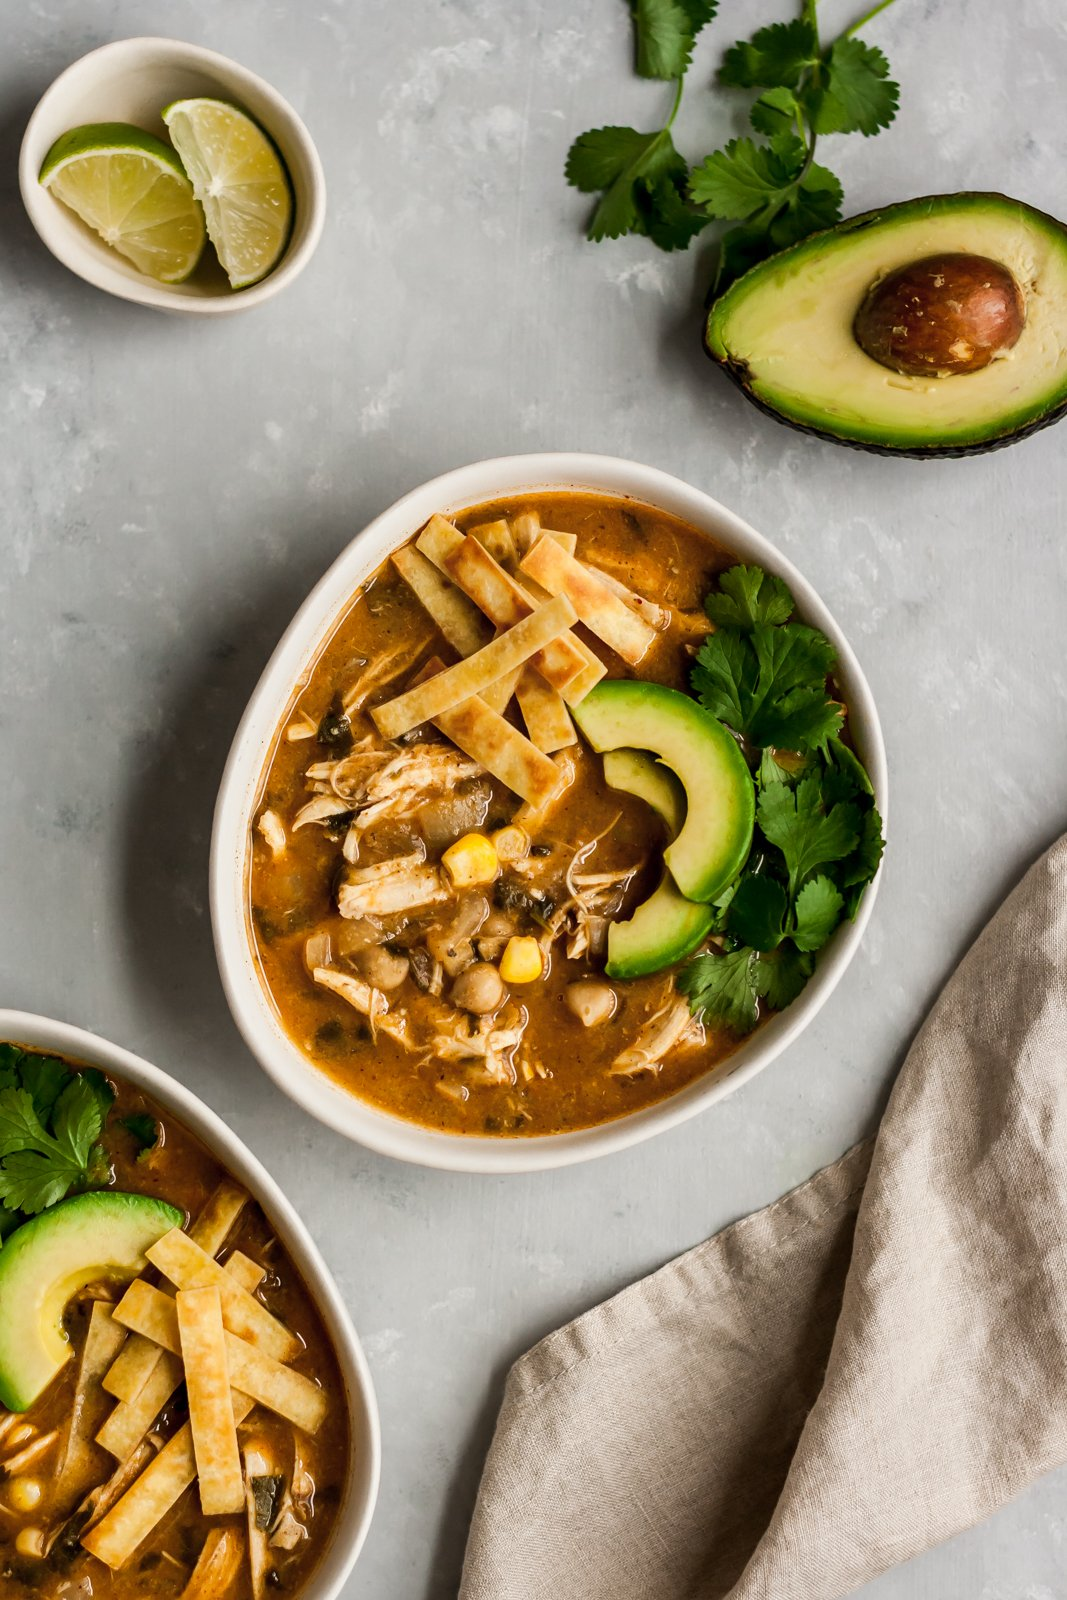 Healthy white chicken chili that's easy and dairy free. Made with green chile, chicken, corn and blended chickpeas to make it creamy. A new family favorite recipe! Serve with avocado, tortilla chips and cilantro.